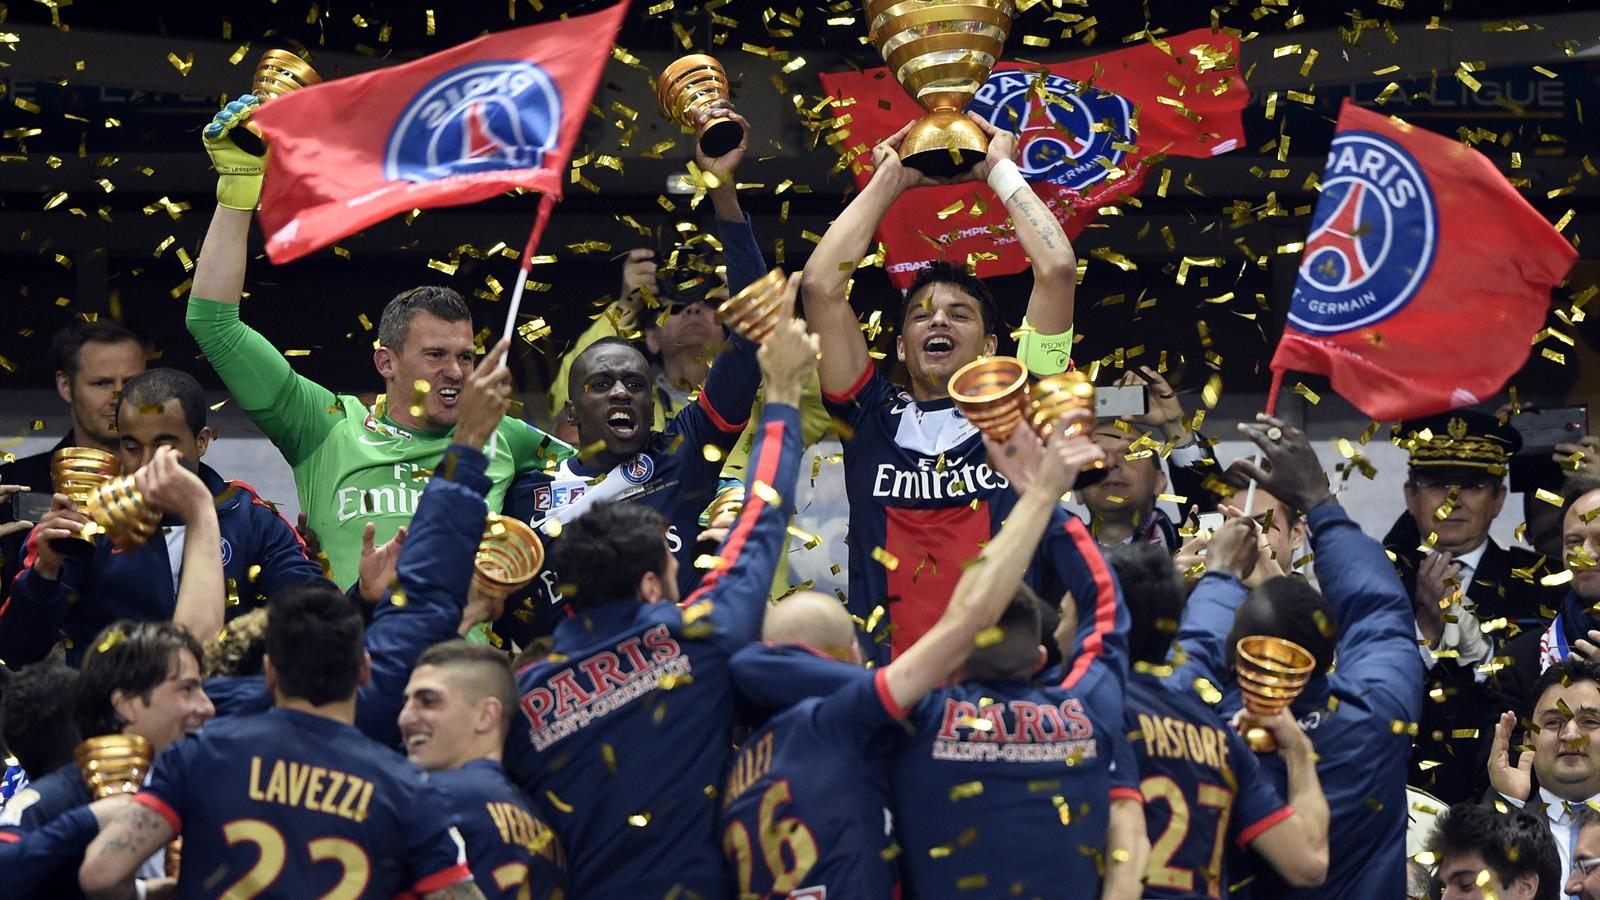 Le psg remporte la coupe de la ligue en battant lyon en finale 2 1 coupe de la ligue 2013 - Coupe de la ligue 2013 14 ...